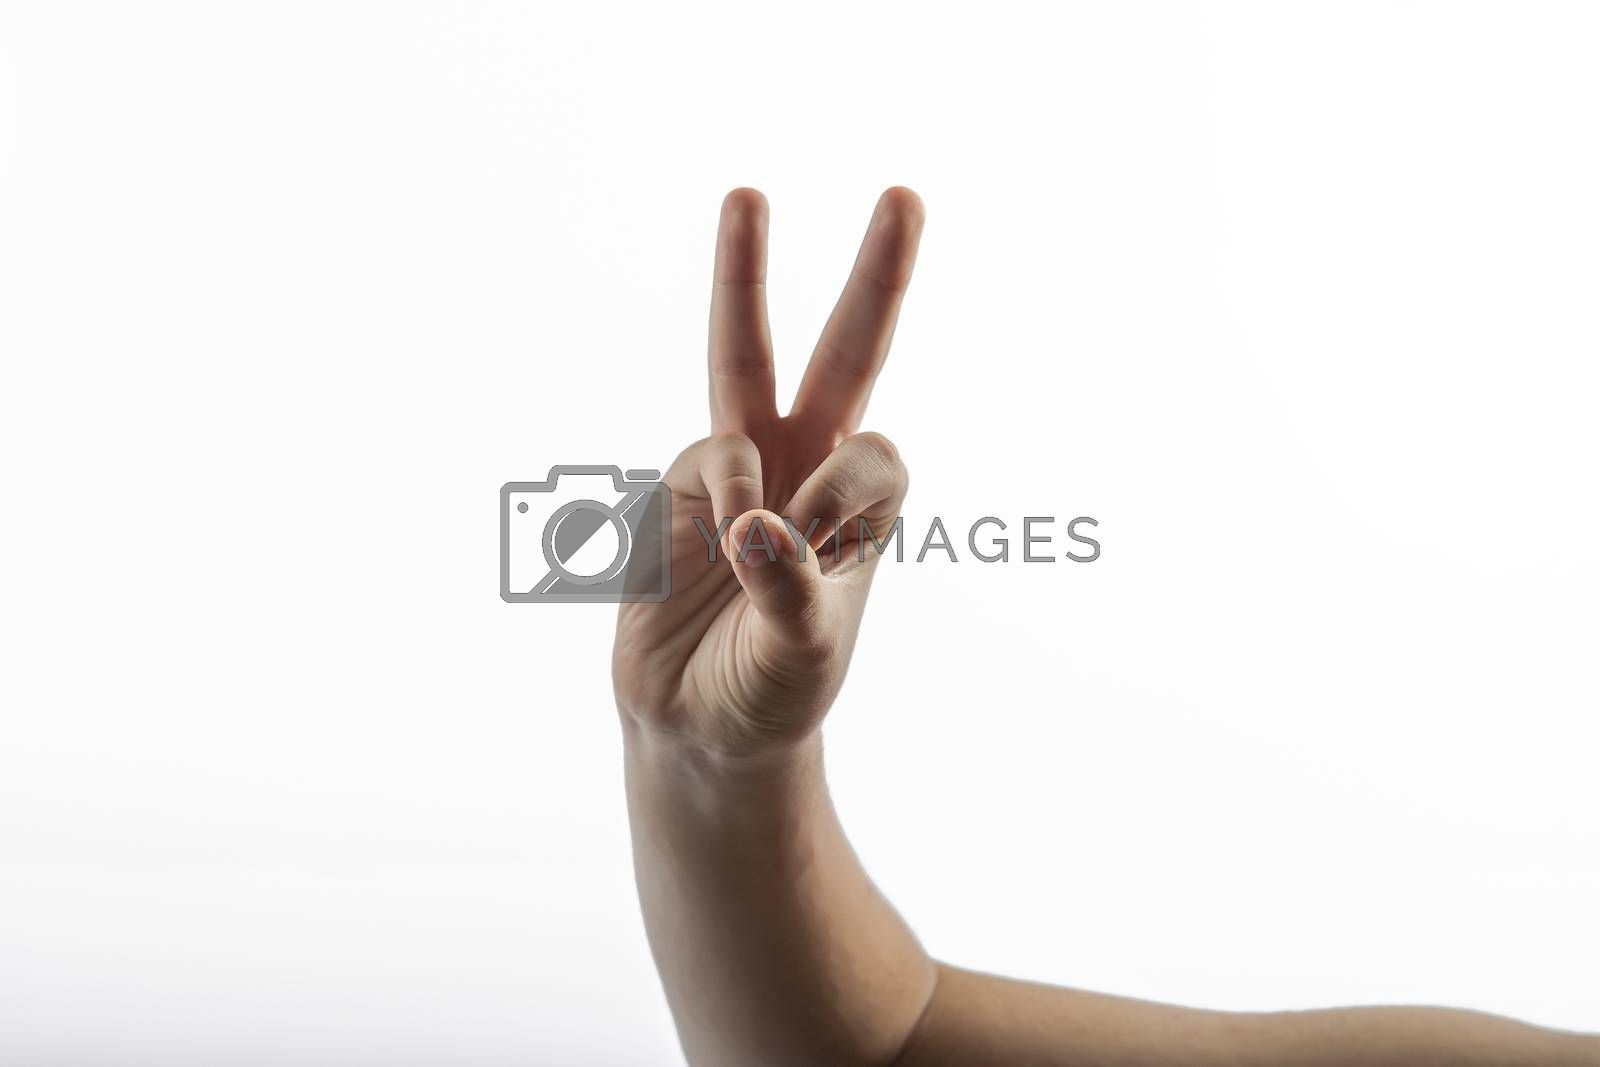 Young hands make a 2 fingers gesture